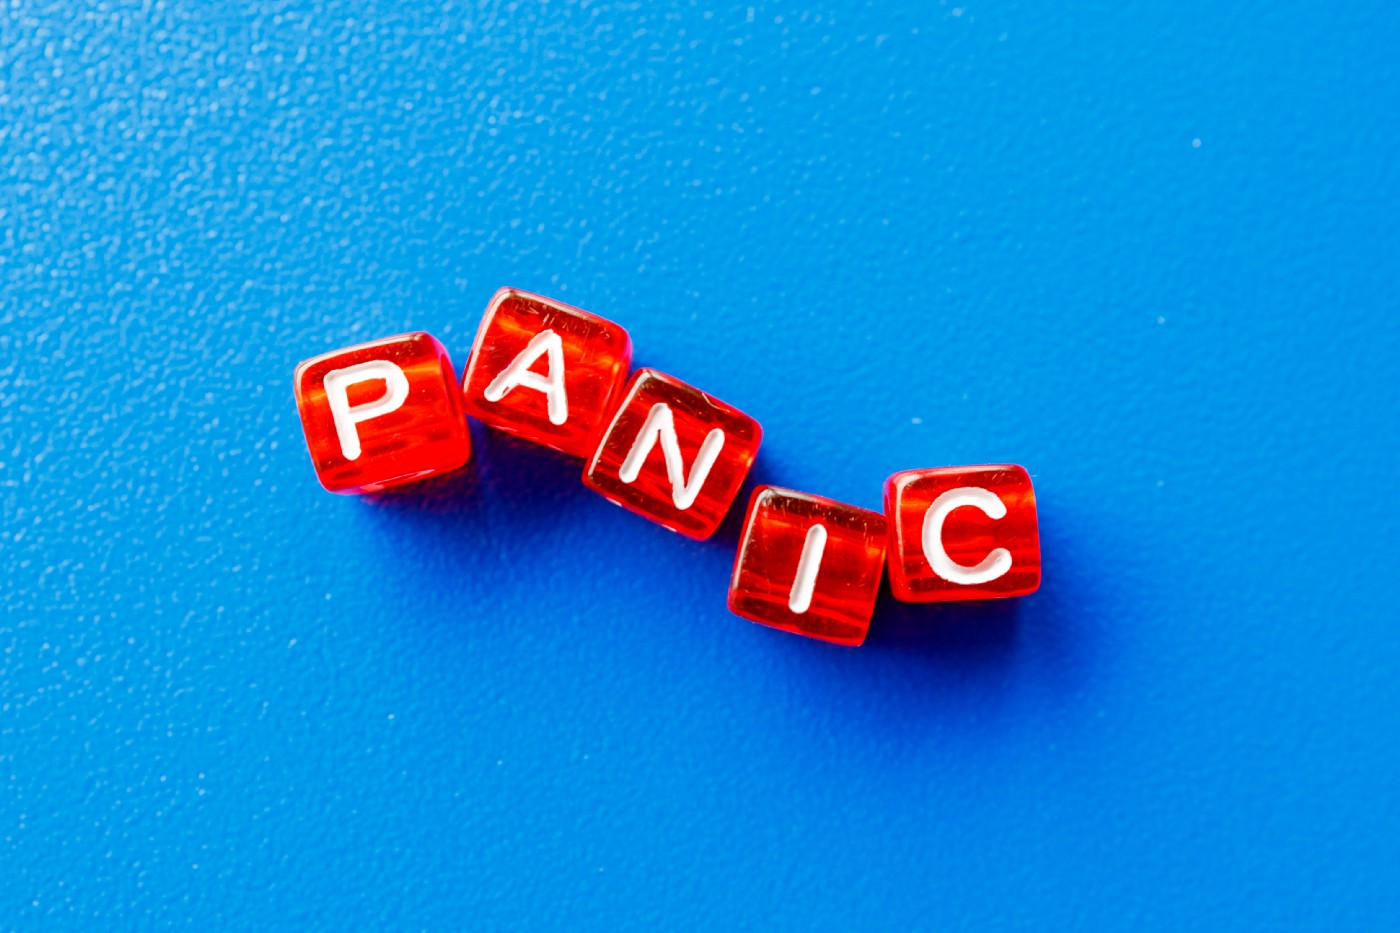 Blue background with red and white letters that read the word panic